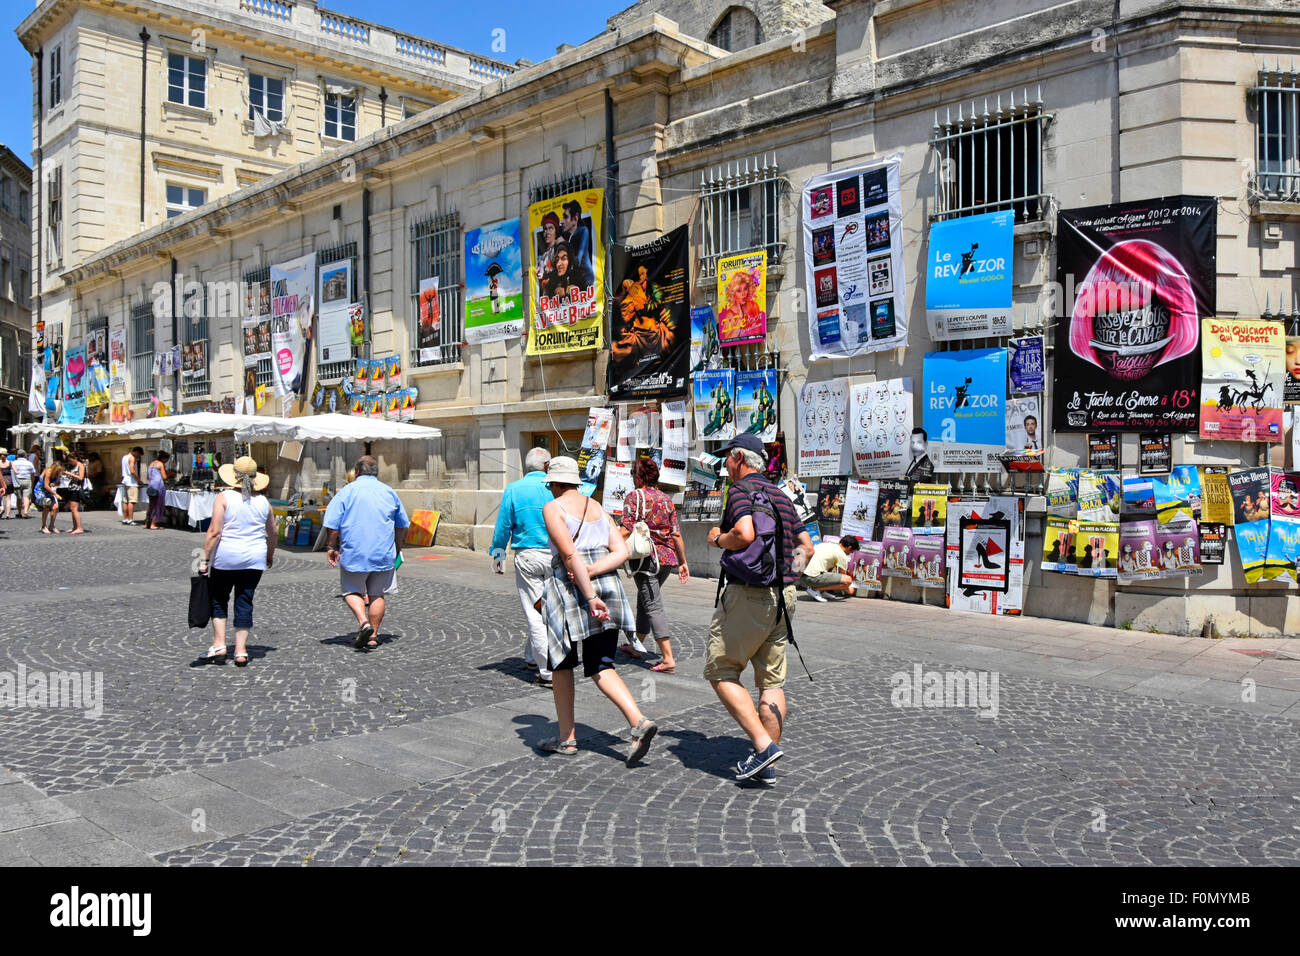 Avignon festival annual July arts festival posters cover the sides of buildings in the city centre Provence South - Stock Image